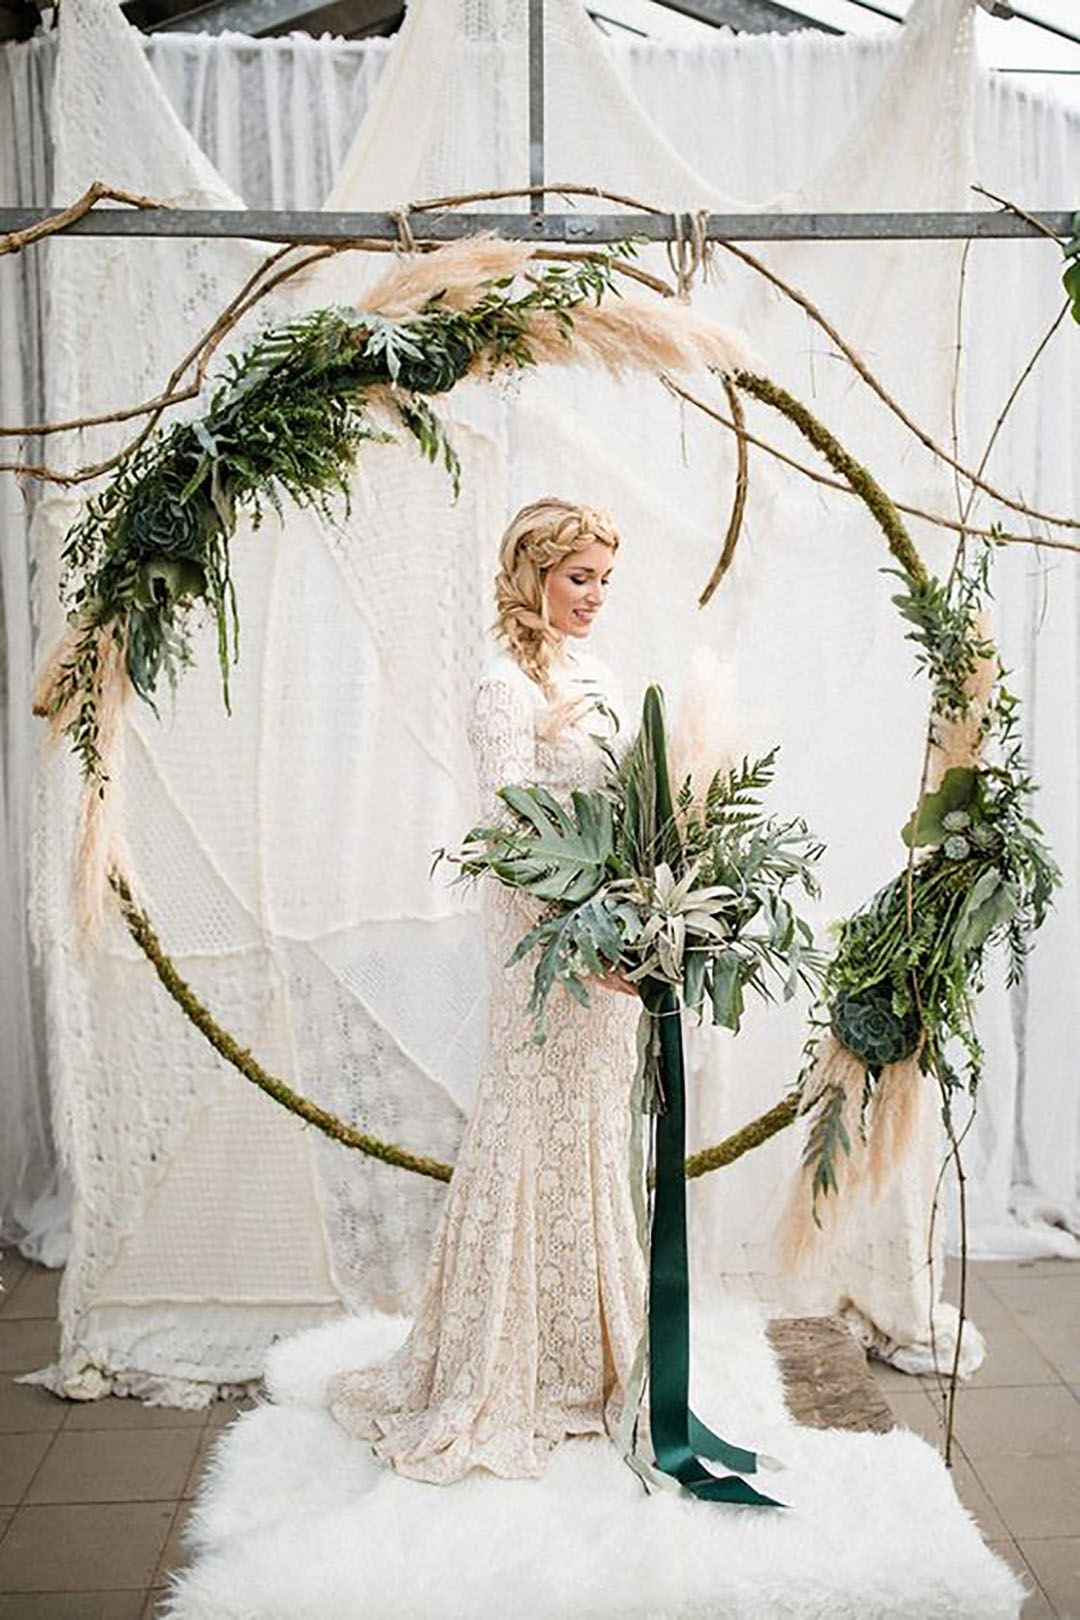 2018 decor trend pinterest ceremony arch arch and wreaths 2018 decor trend are wedding wreaths the new ceremony arch junglespirit Gallery